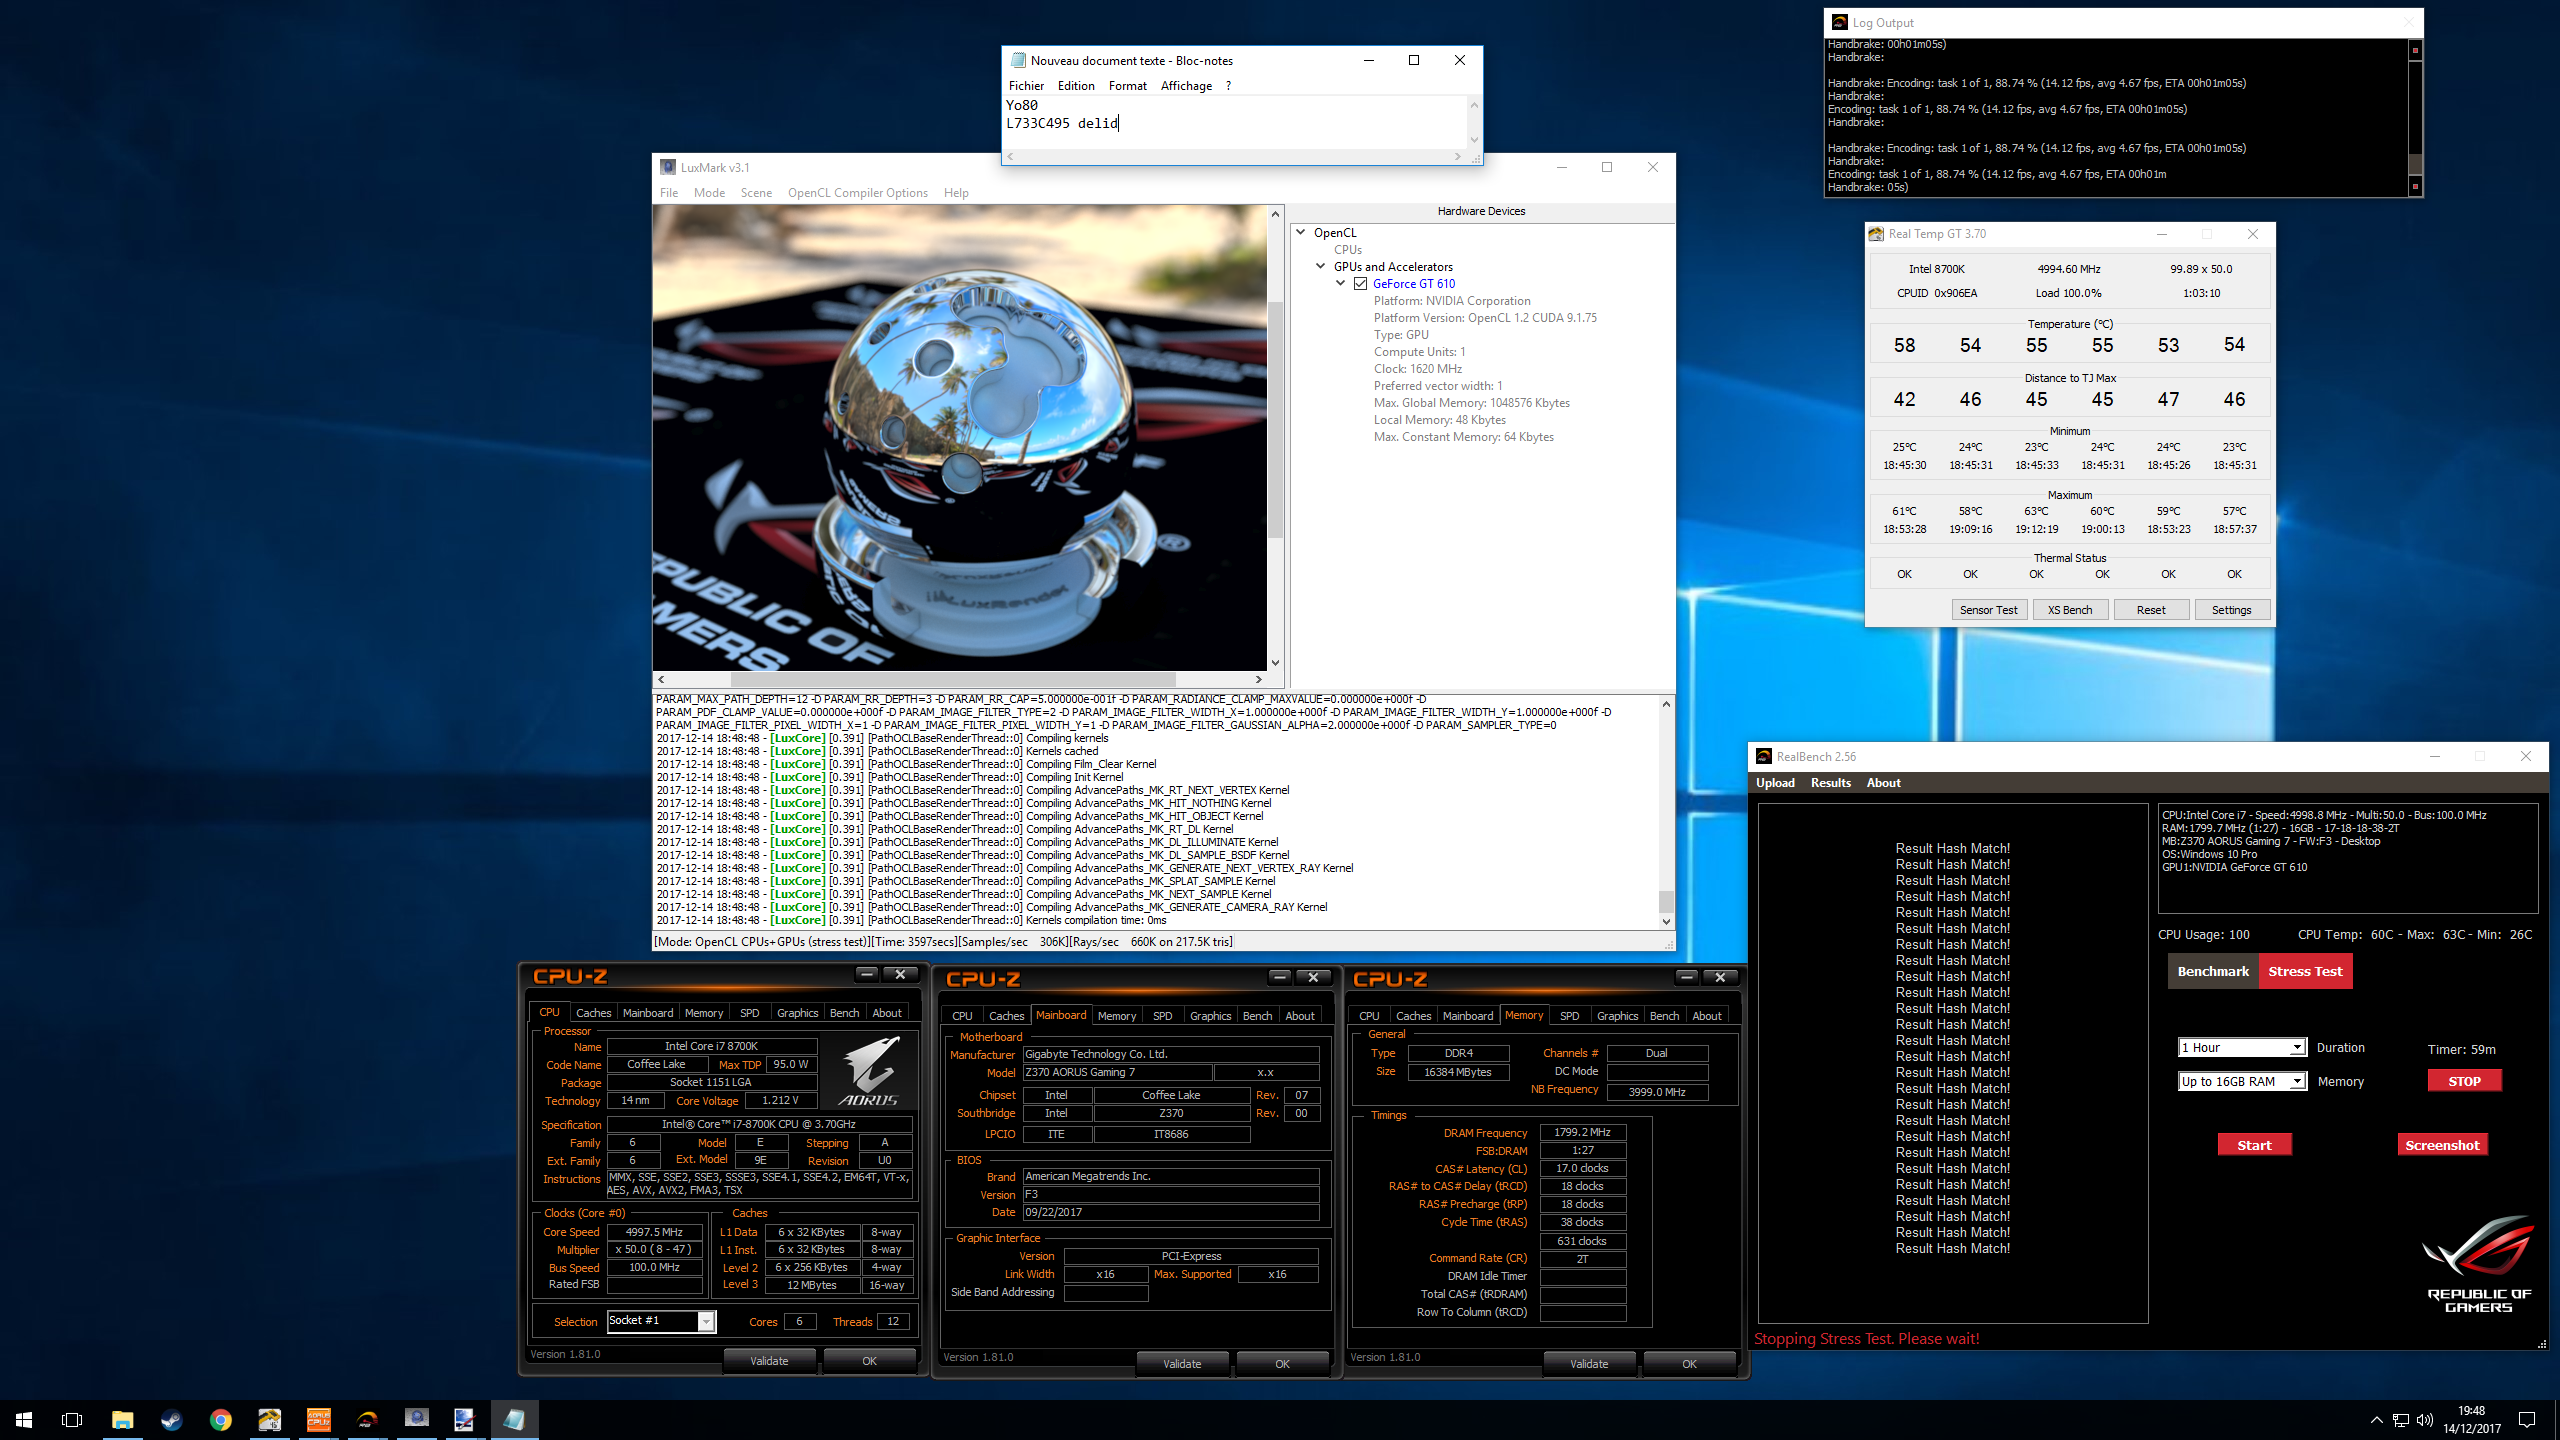 i7 8700k overclock results and settings - Page 131